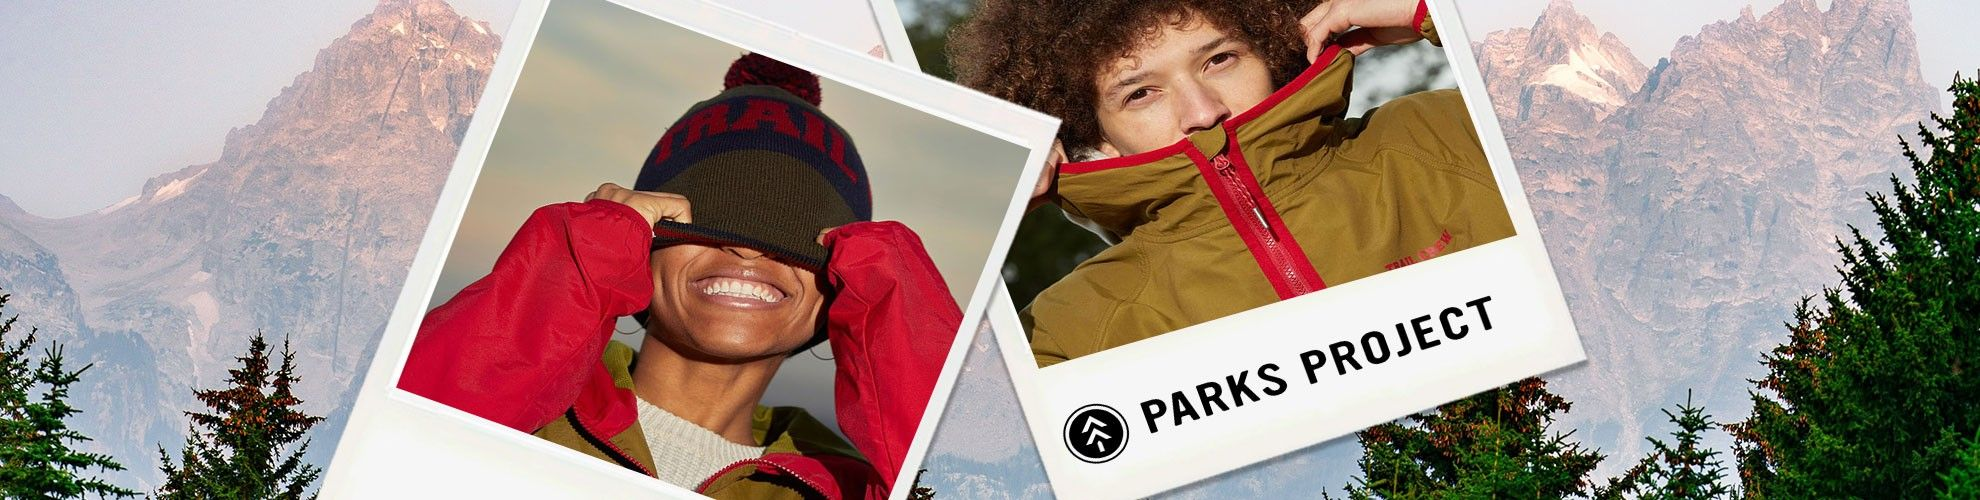 Penfield X Parks Project